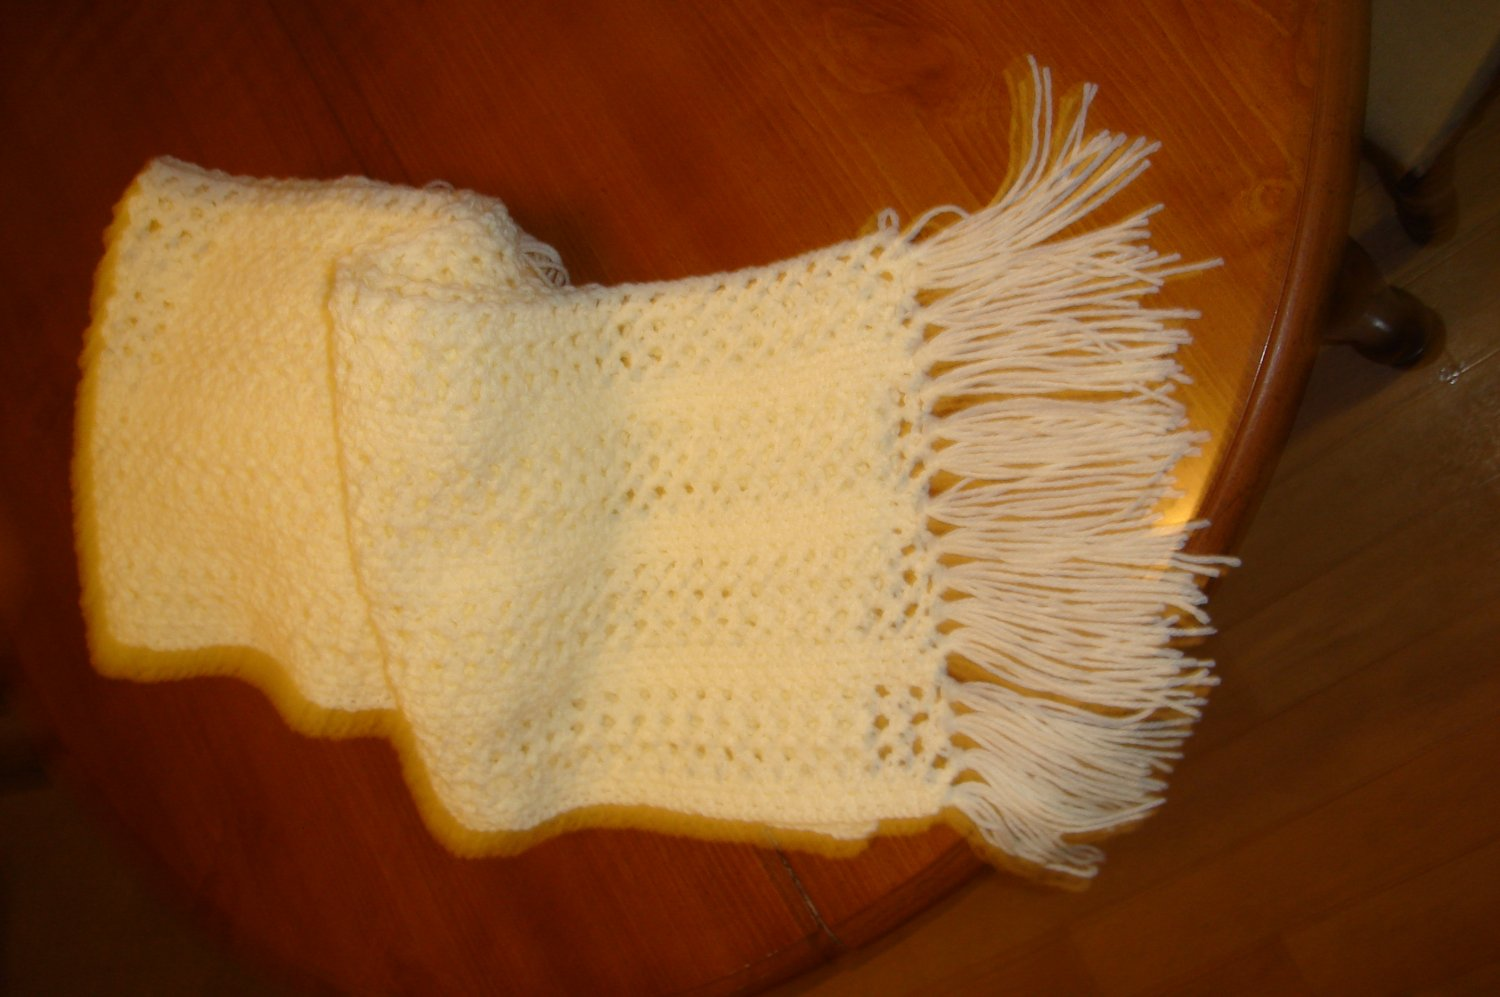 Crocheted Cream lace scarf